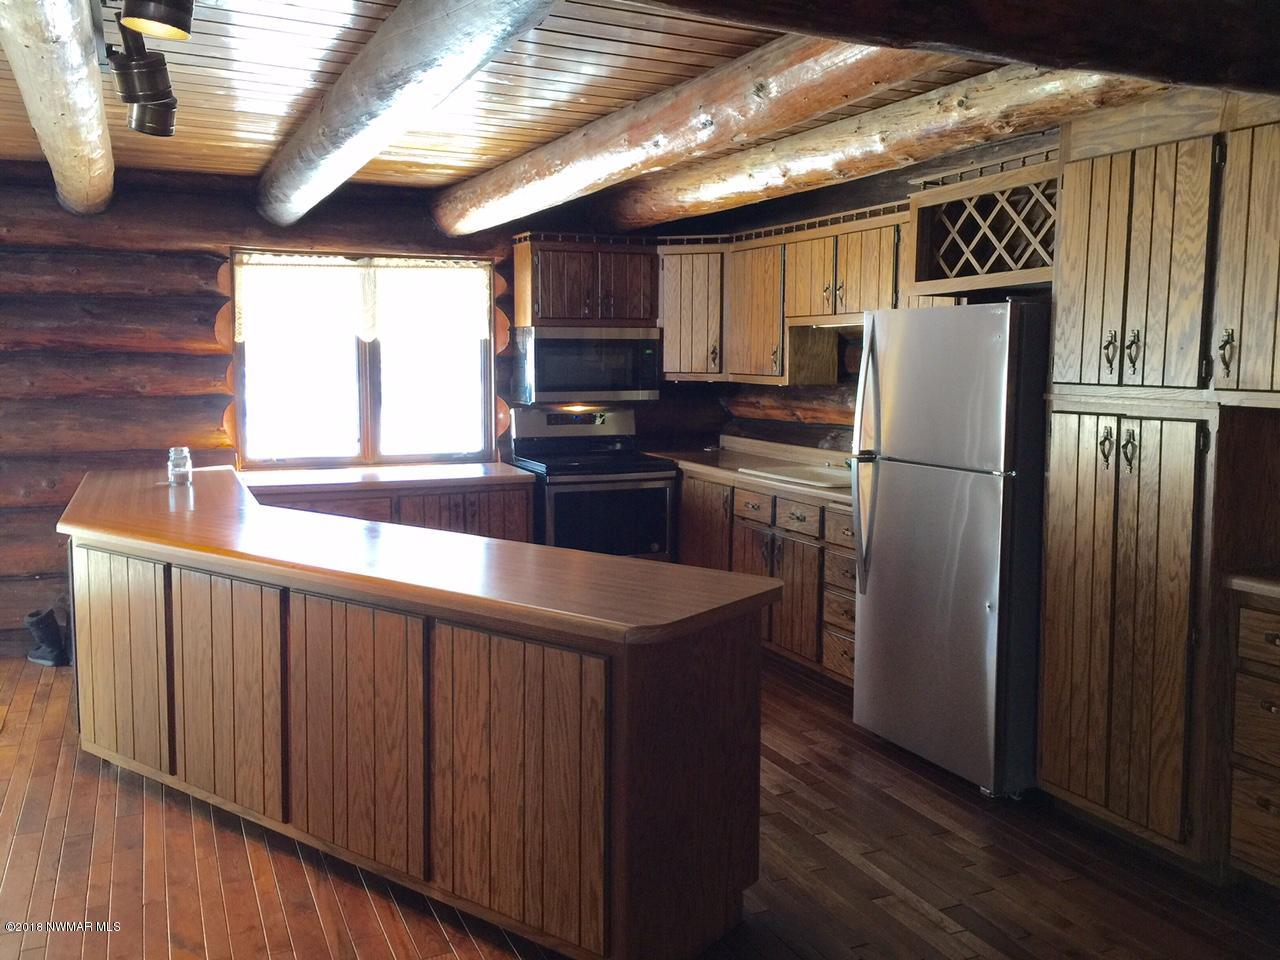 ALL brand new stainless appliances!!